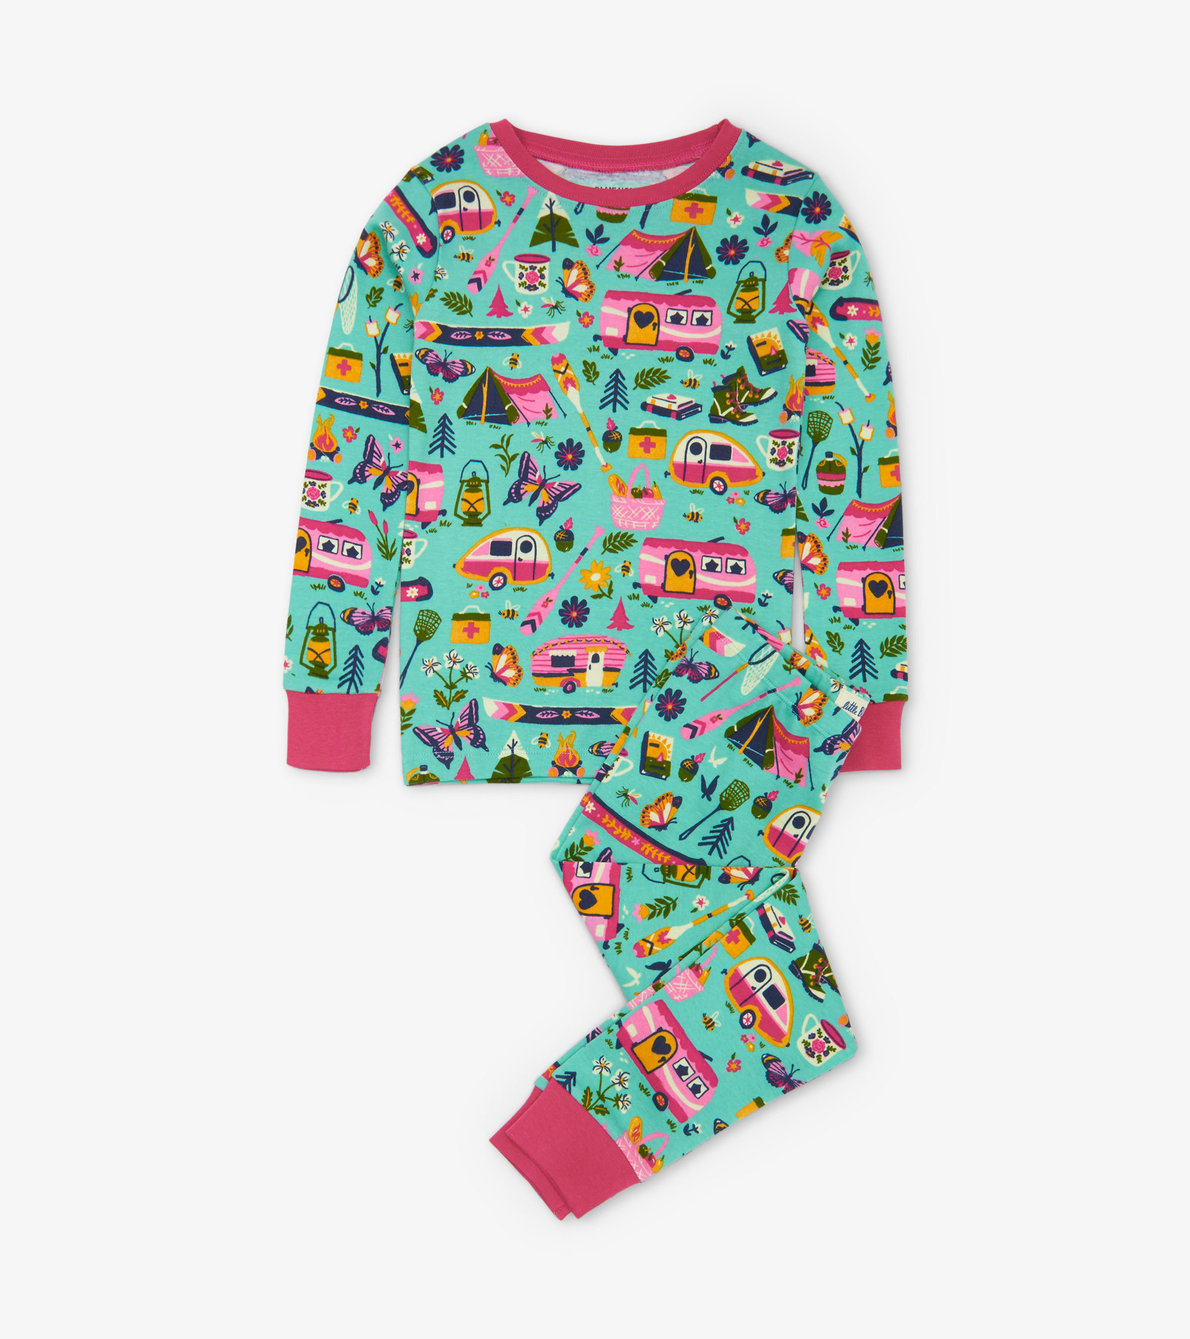 View larger image of Glamping Kids Pajama Set